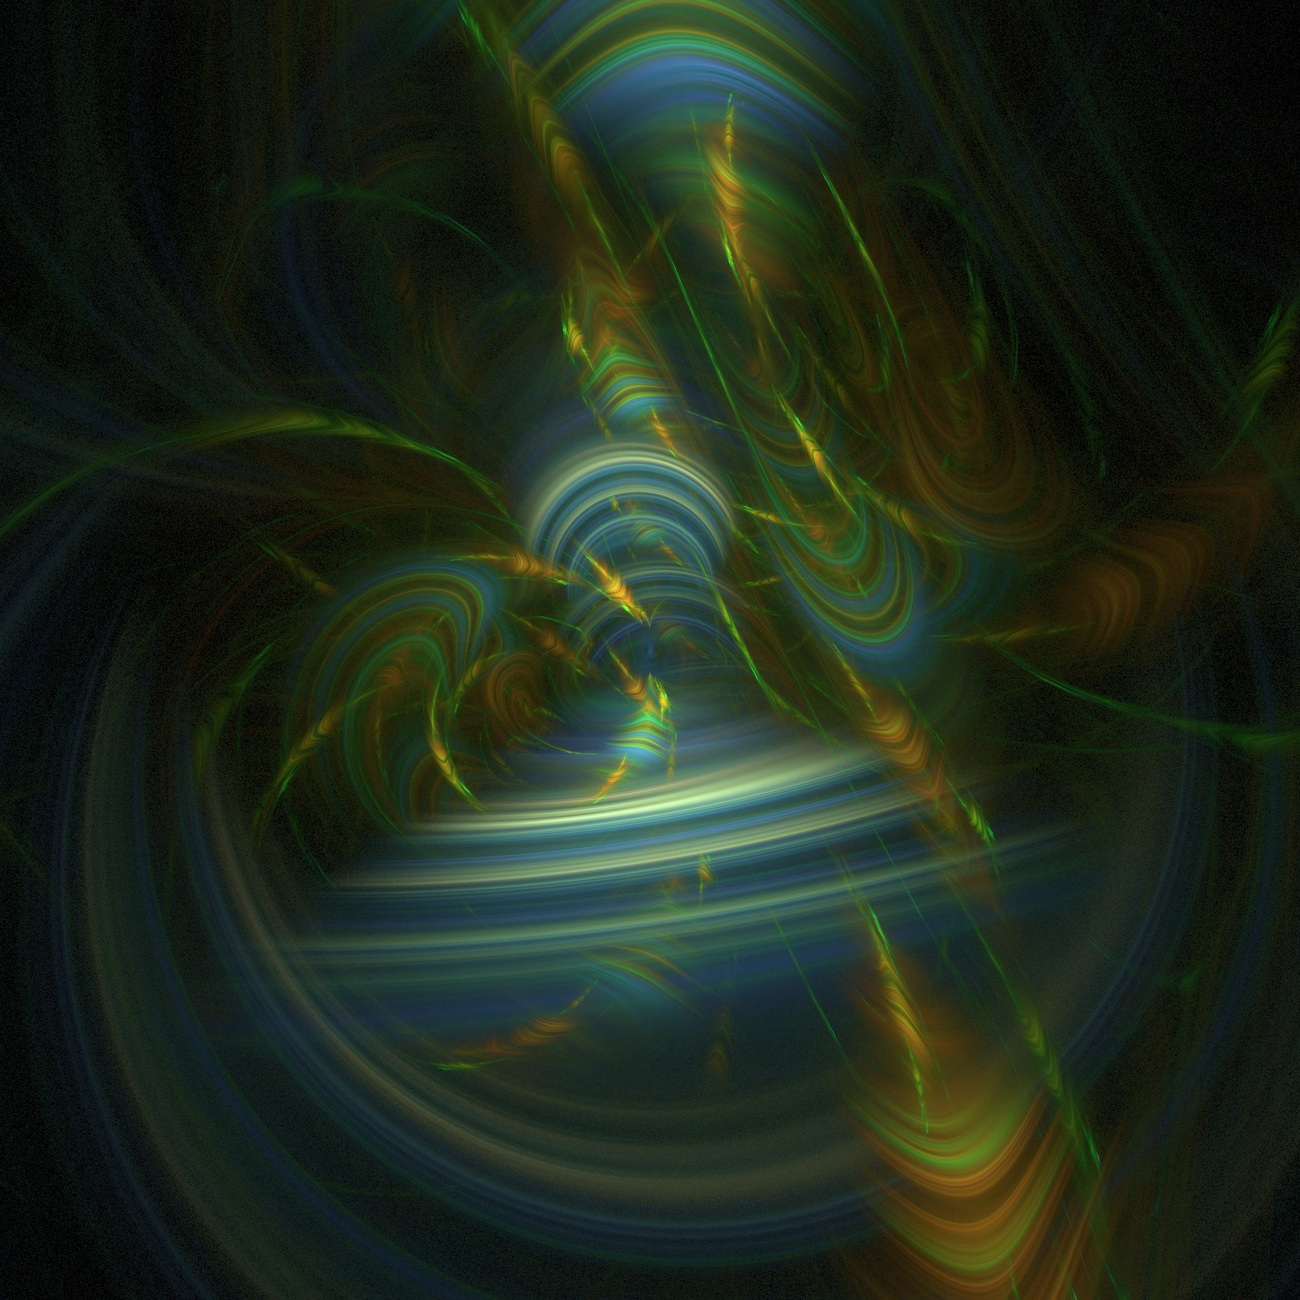 01 texture fractal background by miticalmoon